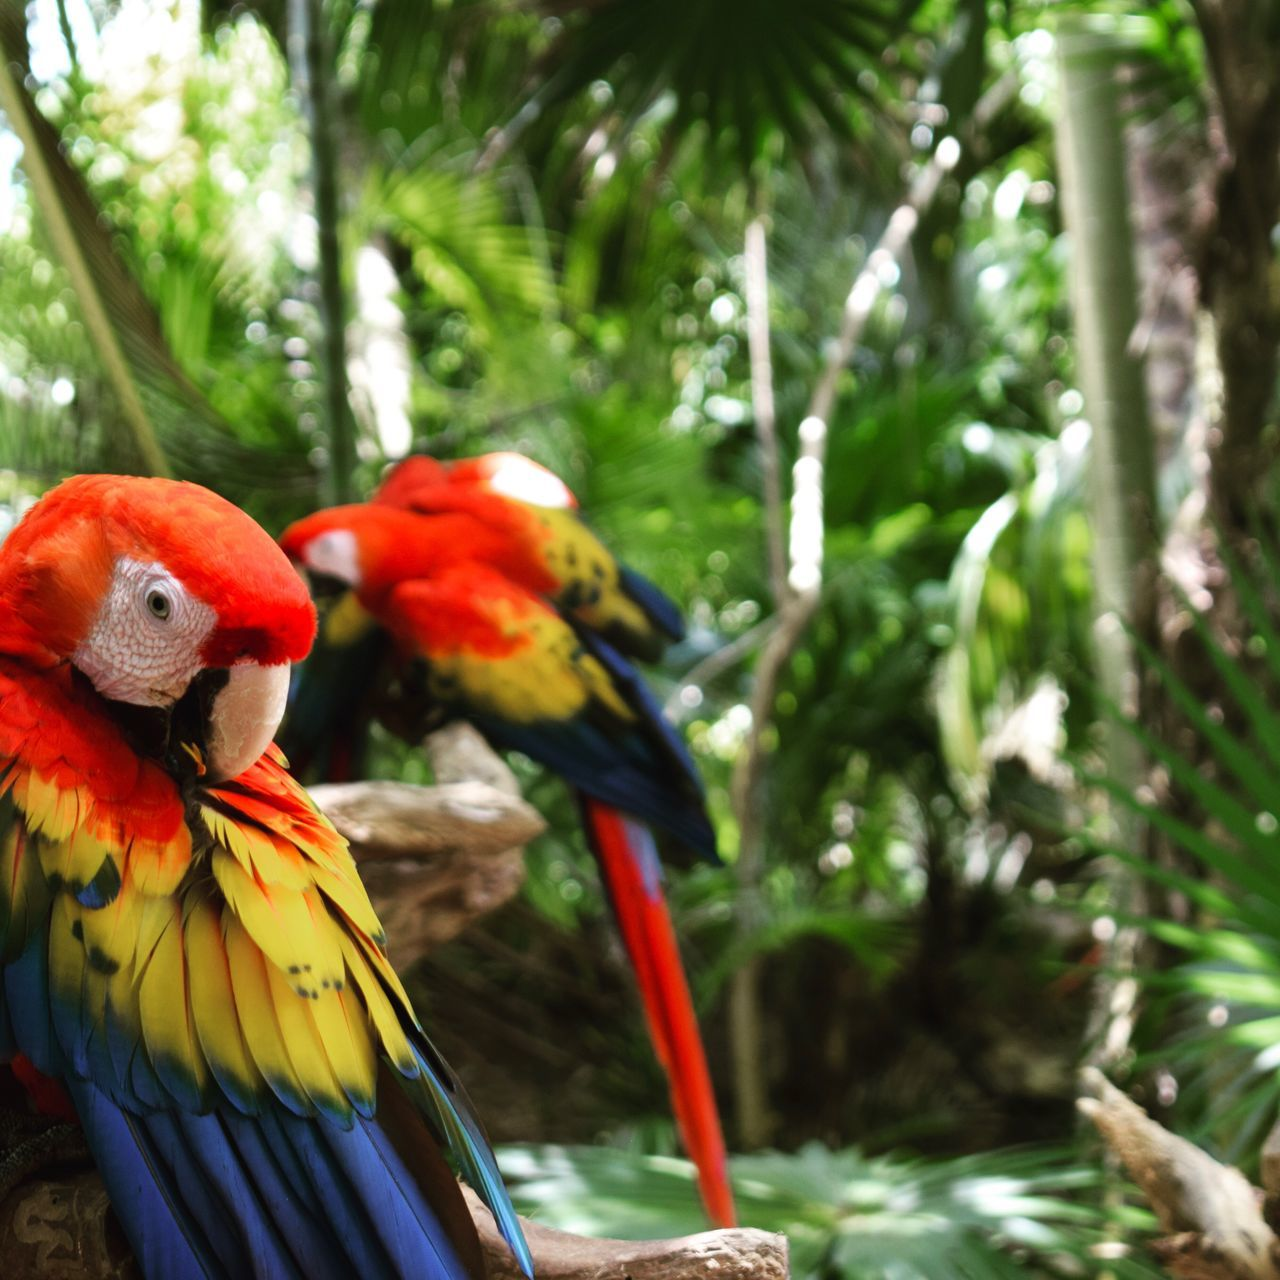 macaw, scarlet macaw, bird, parrot, animal themes, focus on foreground, red, animals in the wild, no people, tree, animal wildlife, one animal, day, nature, gold and blue macaw, beauty in nature, perching, close-up, multi colored, outdoors